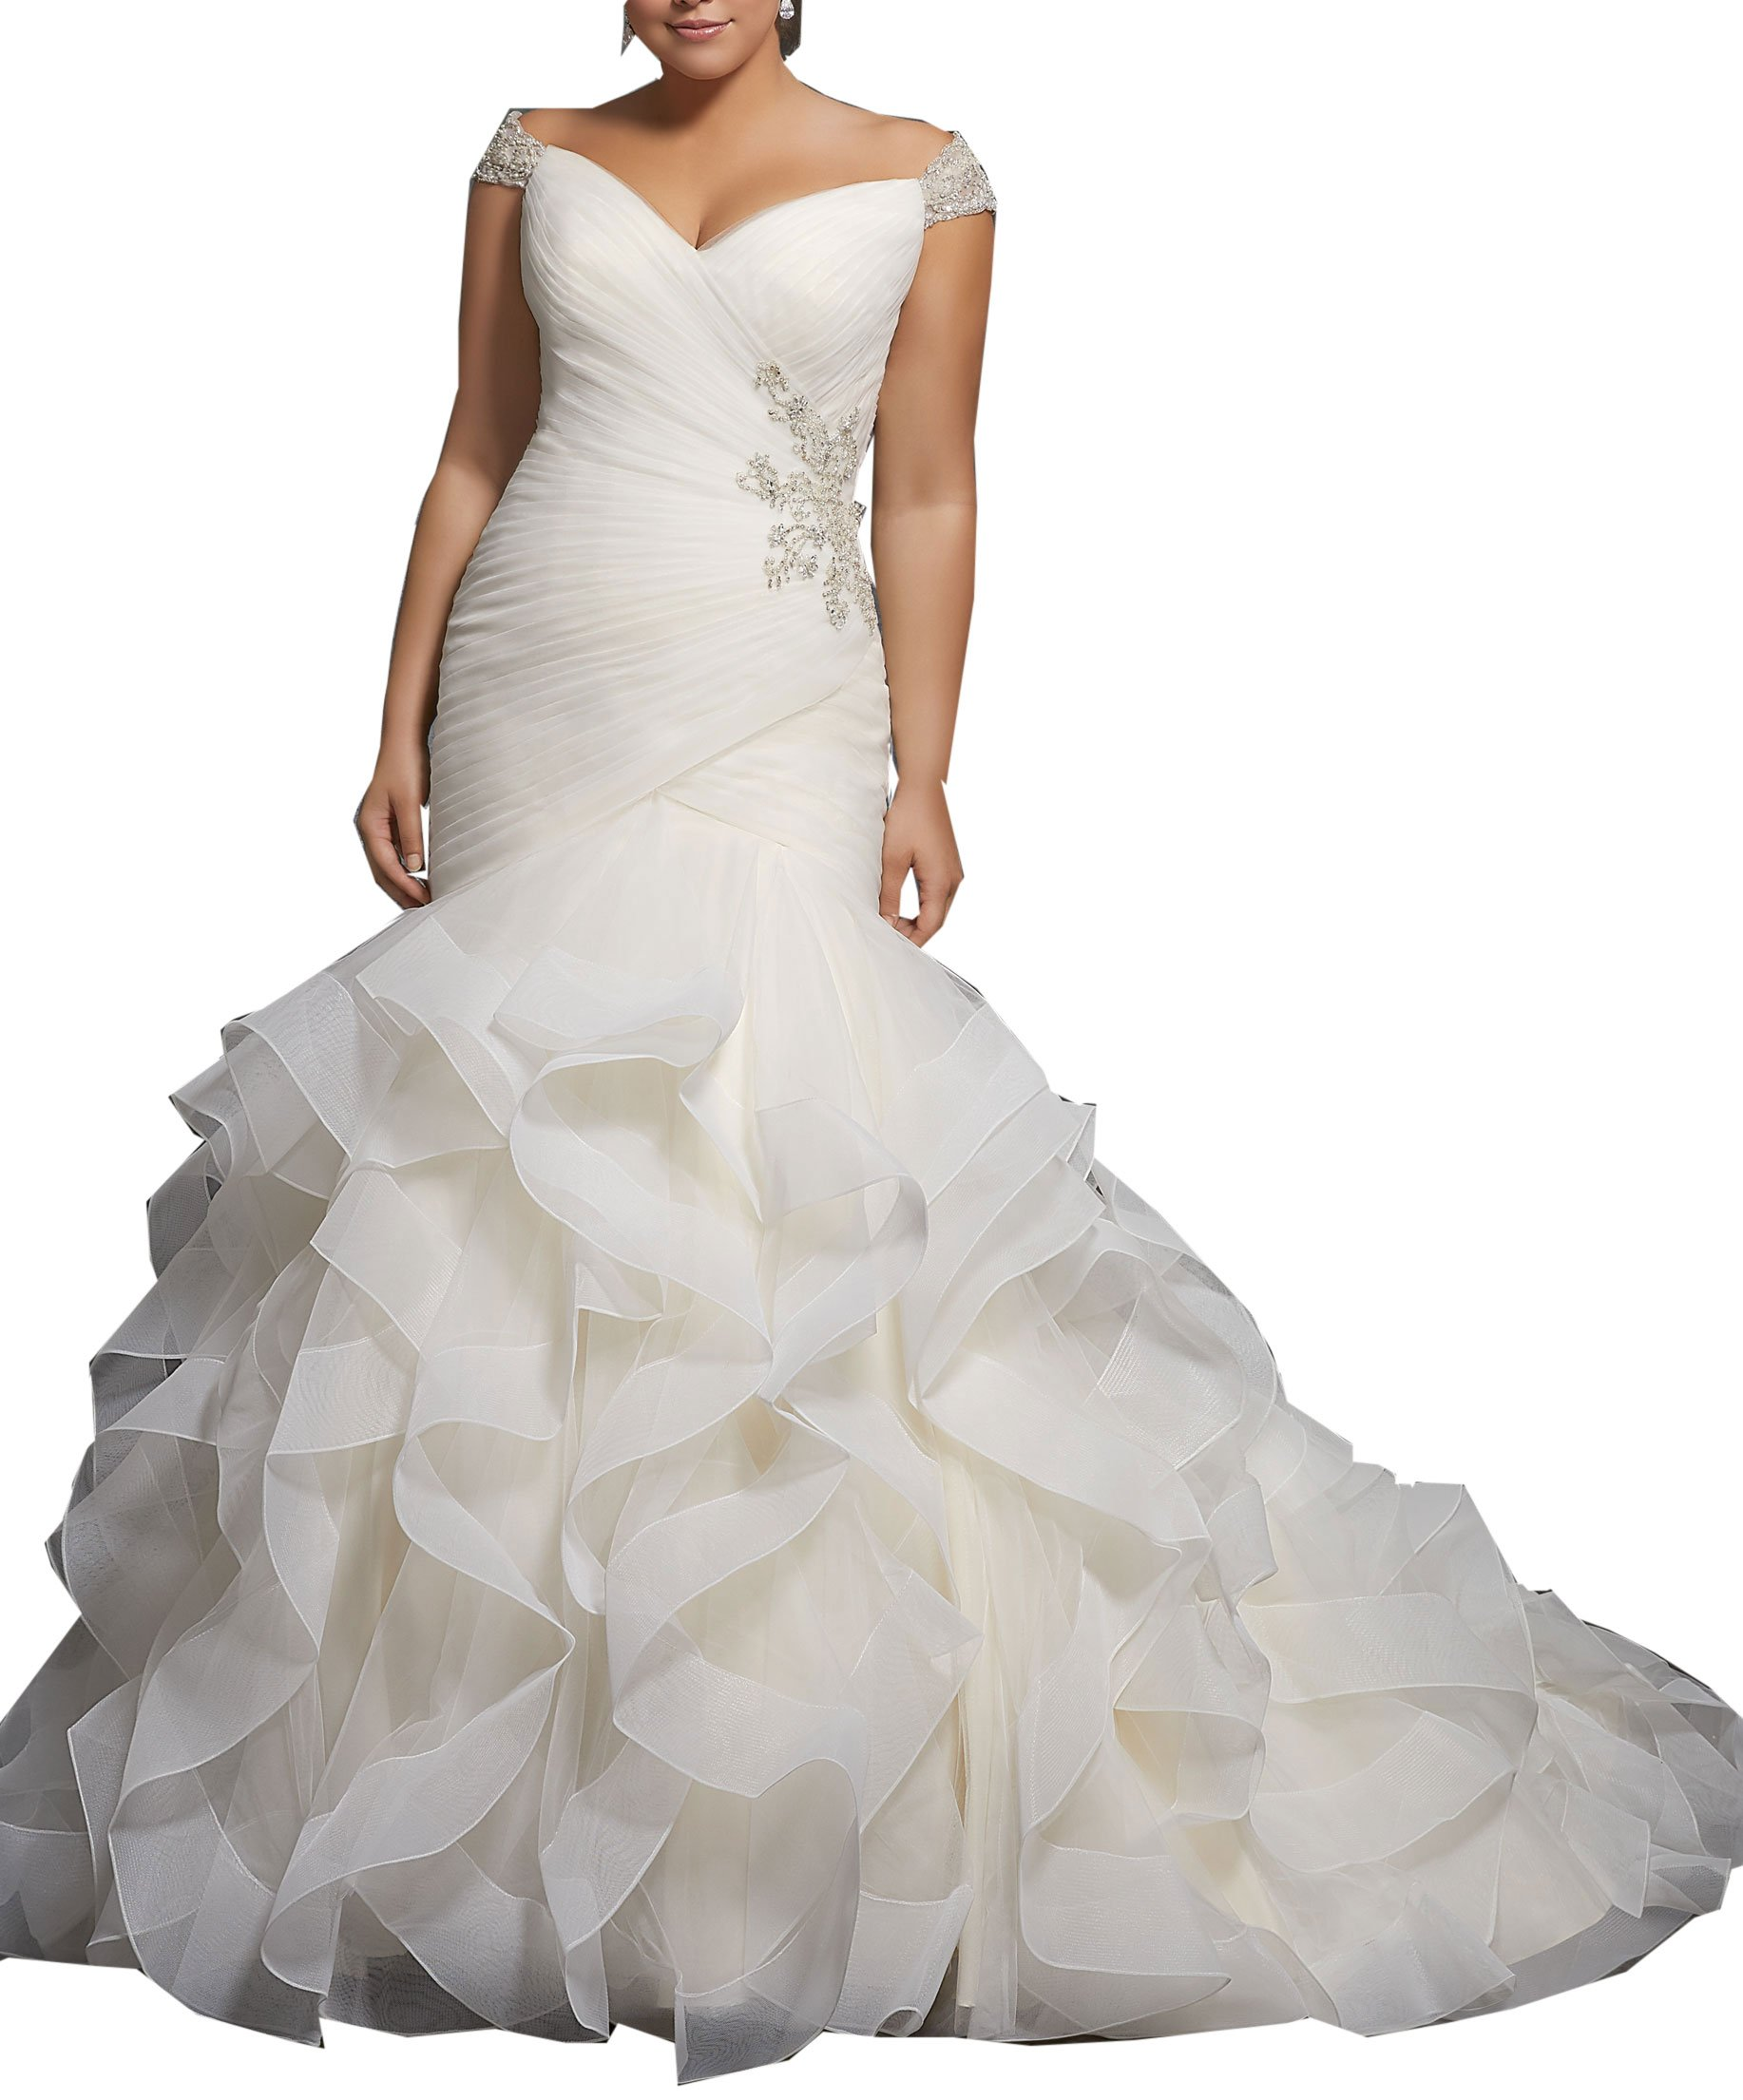 Women\'s Plus Size Mermaid Wedding Dresses for Bride with Long Train Beaded  Bridal Gown White 16